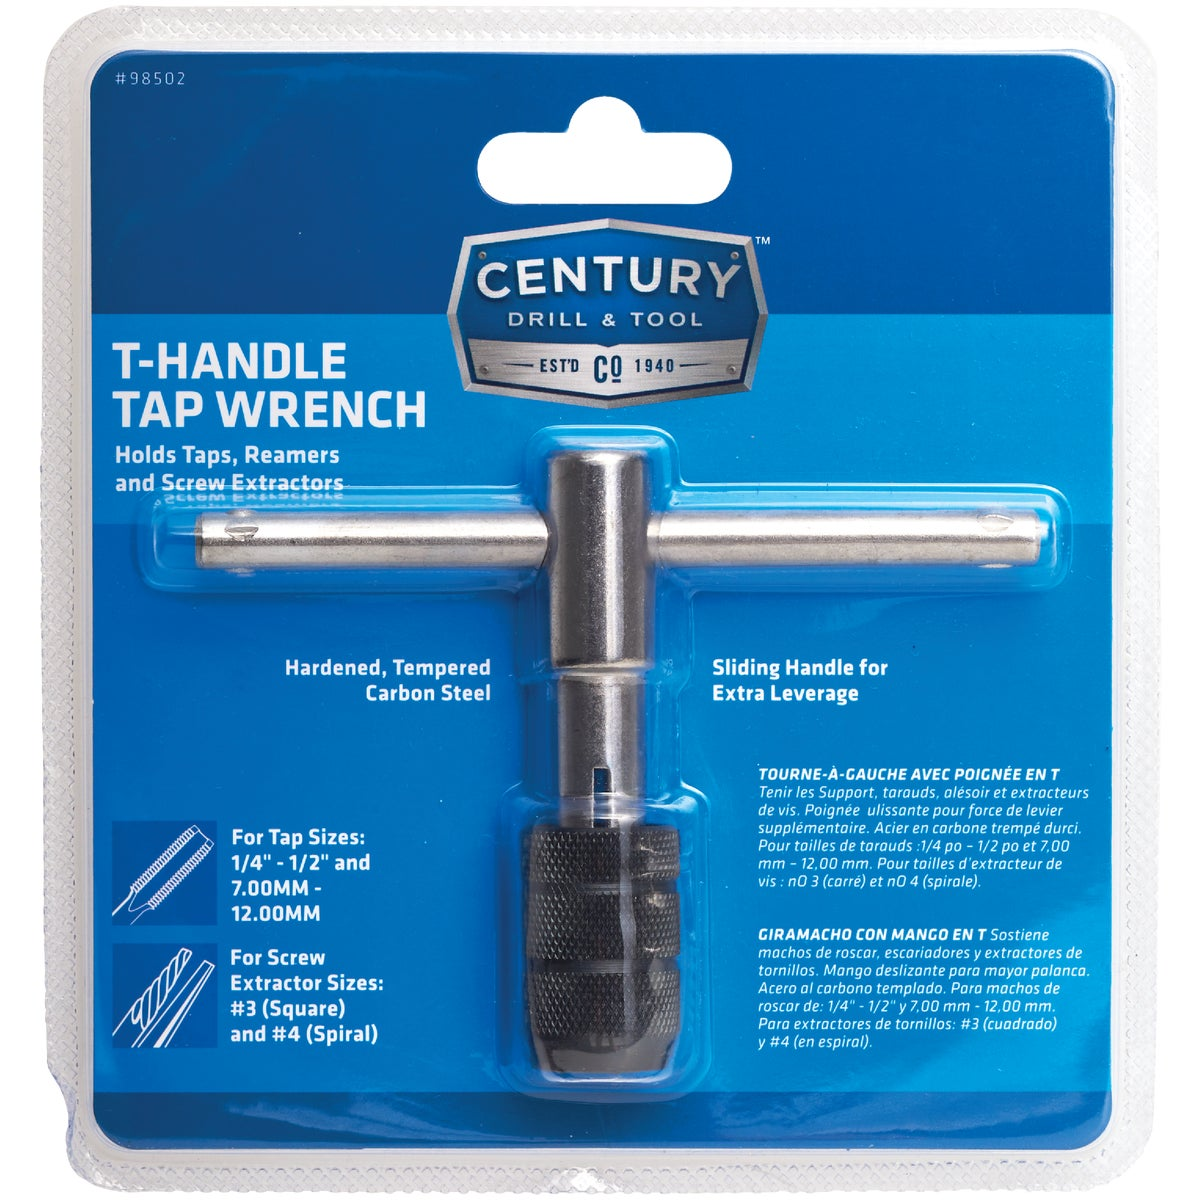 Tr-2E T-Handl Tap Wrench